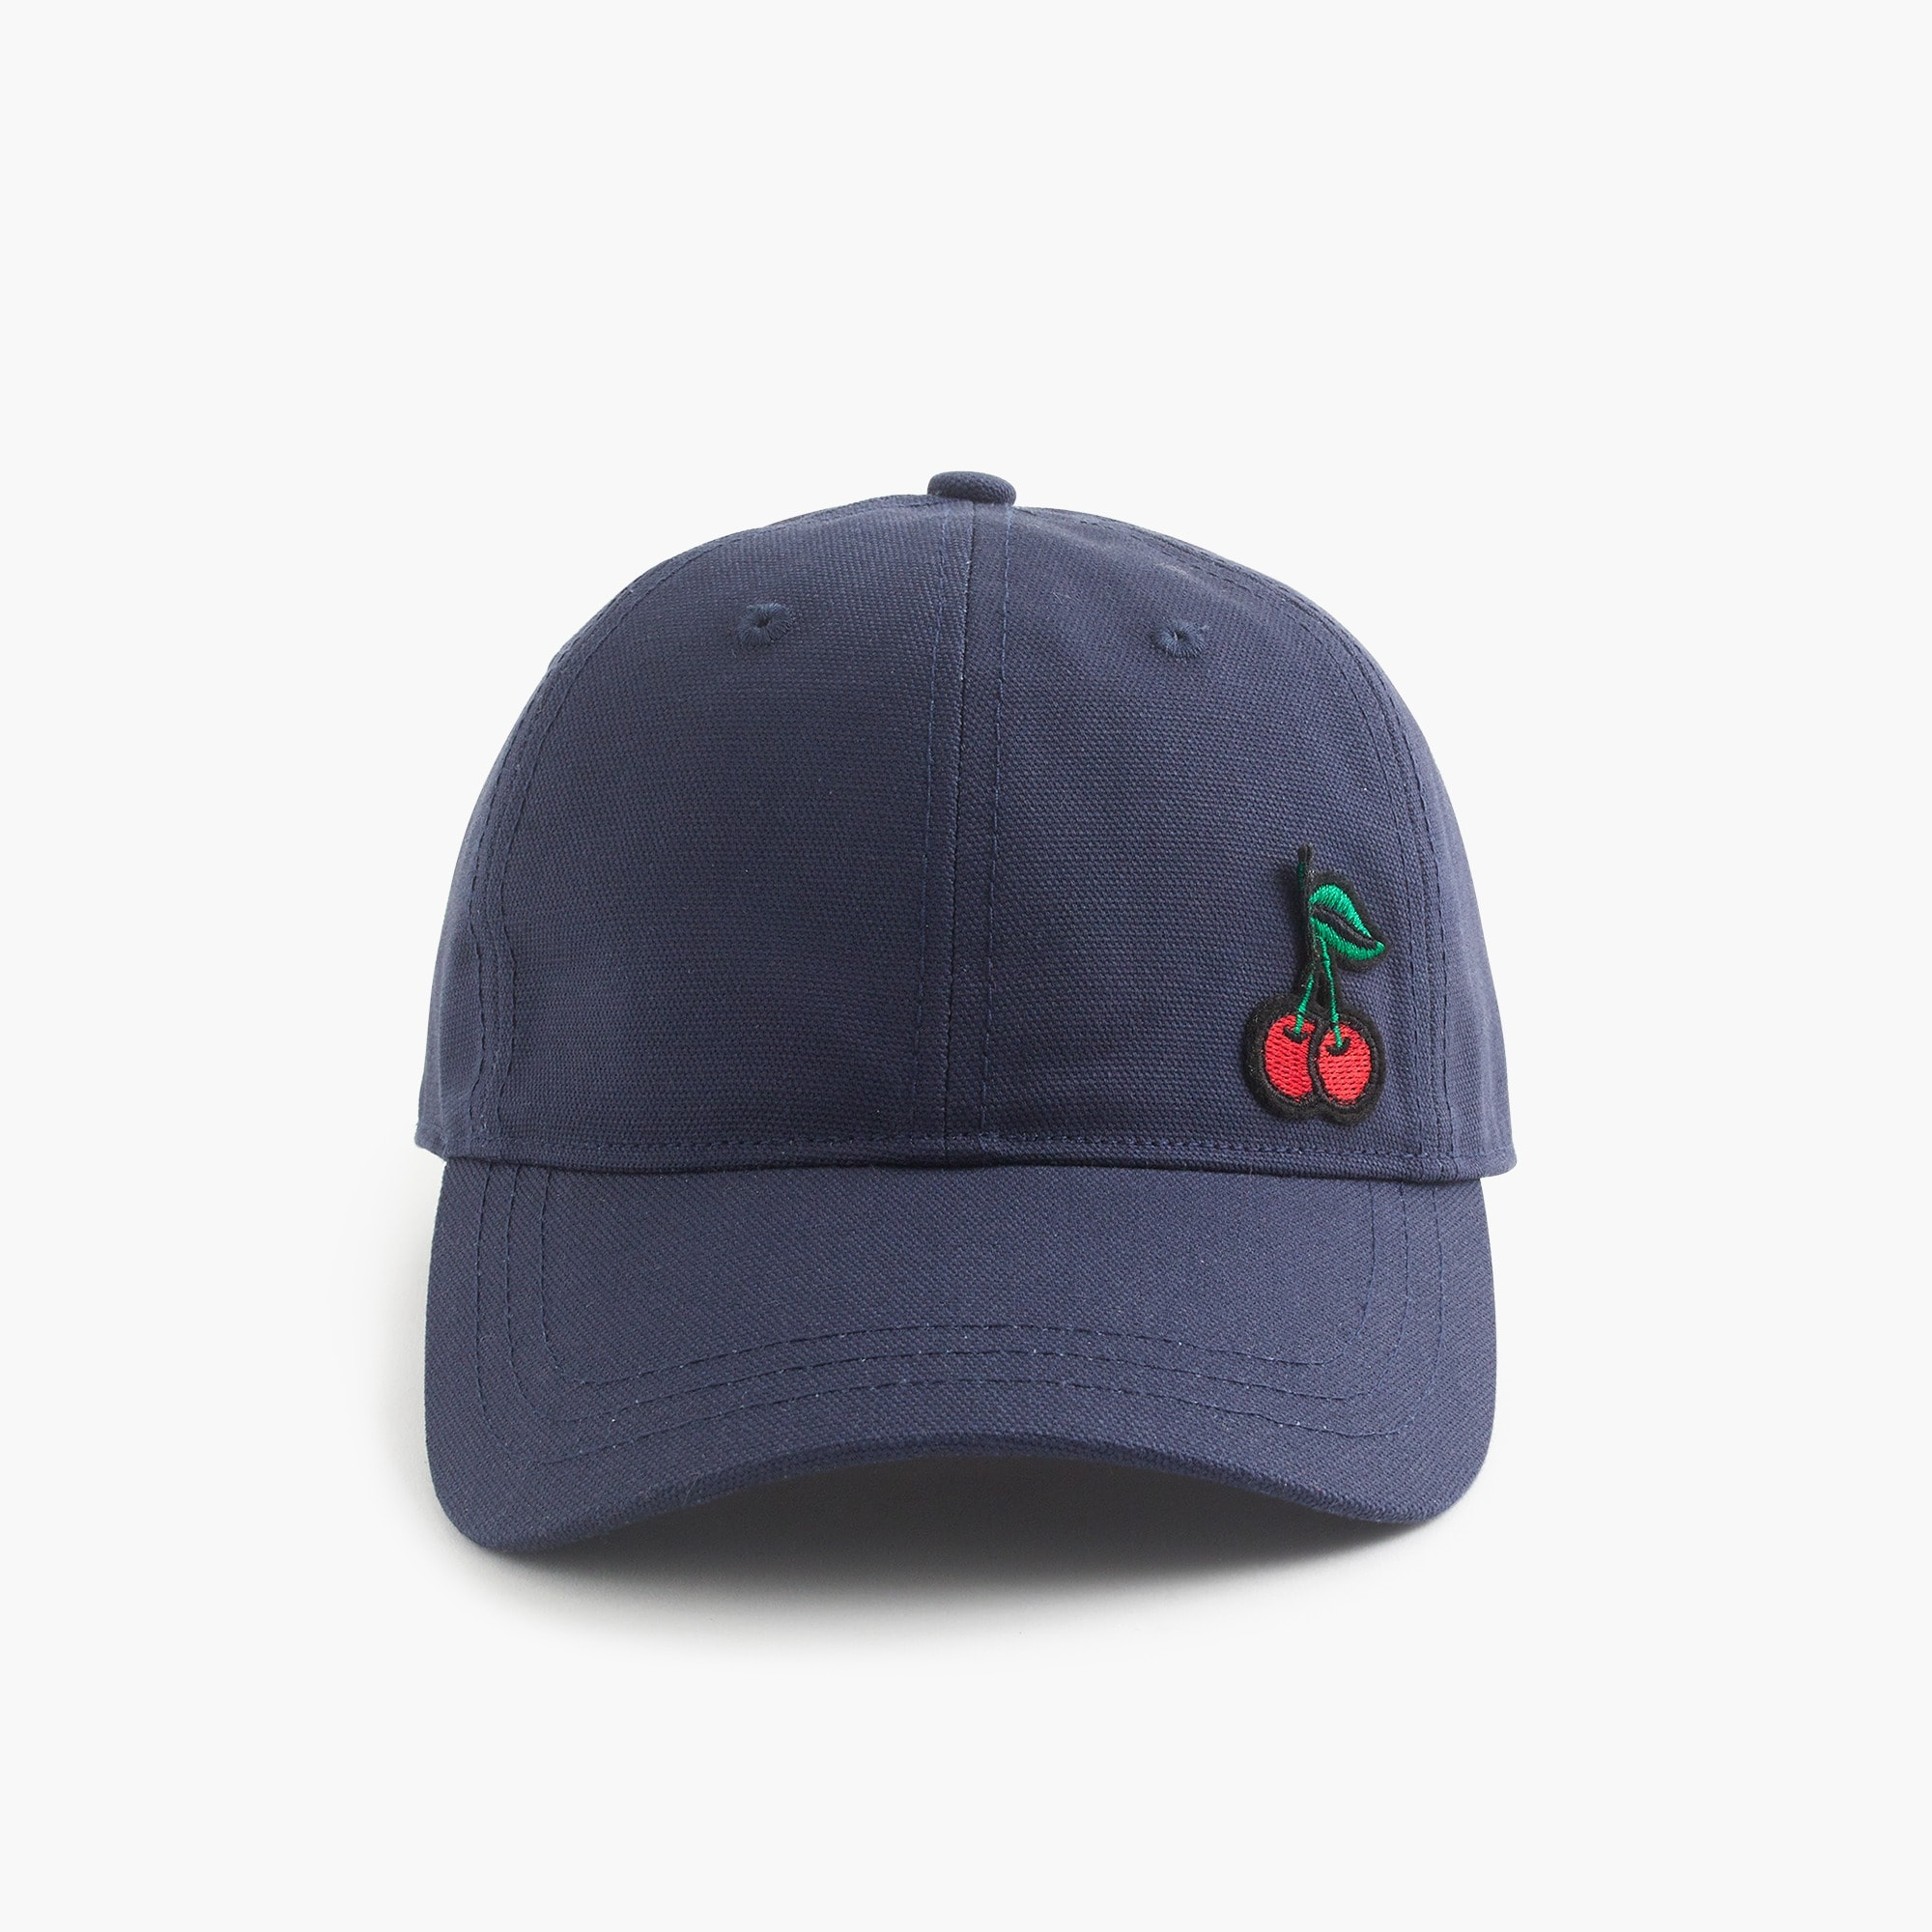 Image 1 for Baseball cap with cherry patch